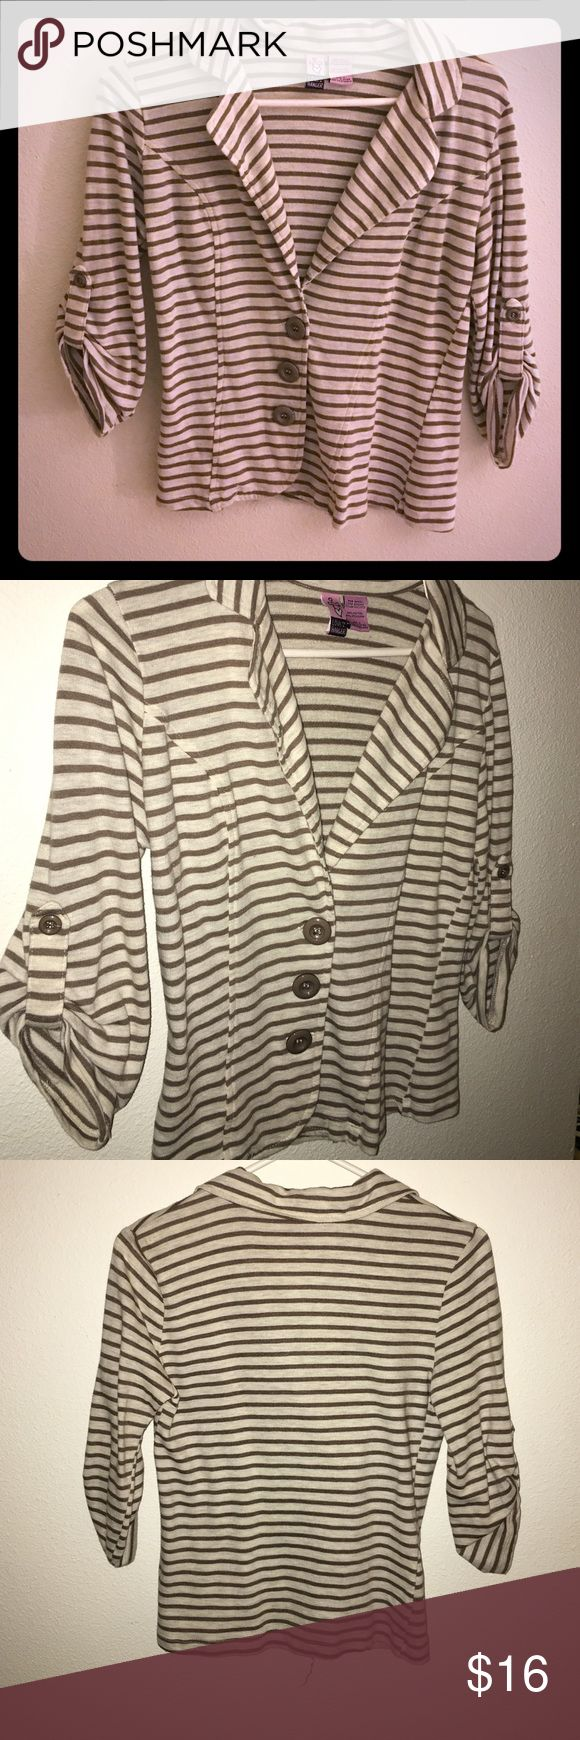 Love on a hangar V-neck cardigan. V neck cardigan. Cotton and polyester, fabric is forgiving and gives good shape. Casual or dress up! Cream with brown stripes. Size S. love on a hanger Sweaters V-Necks